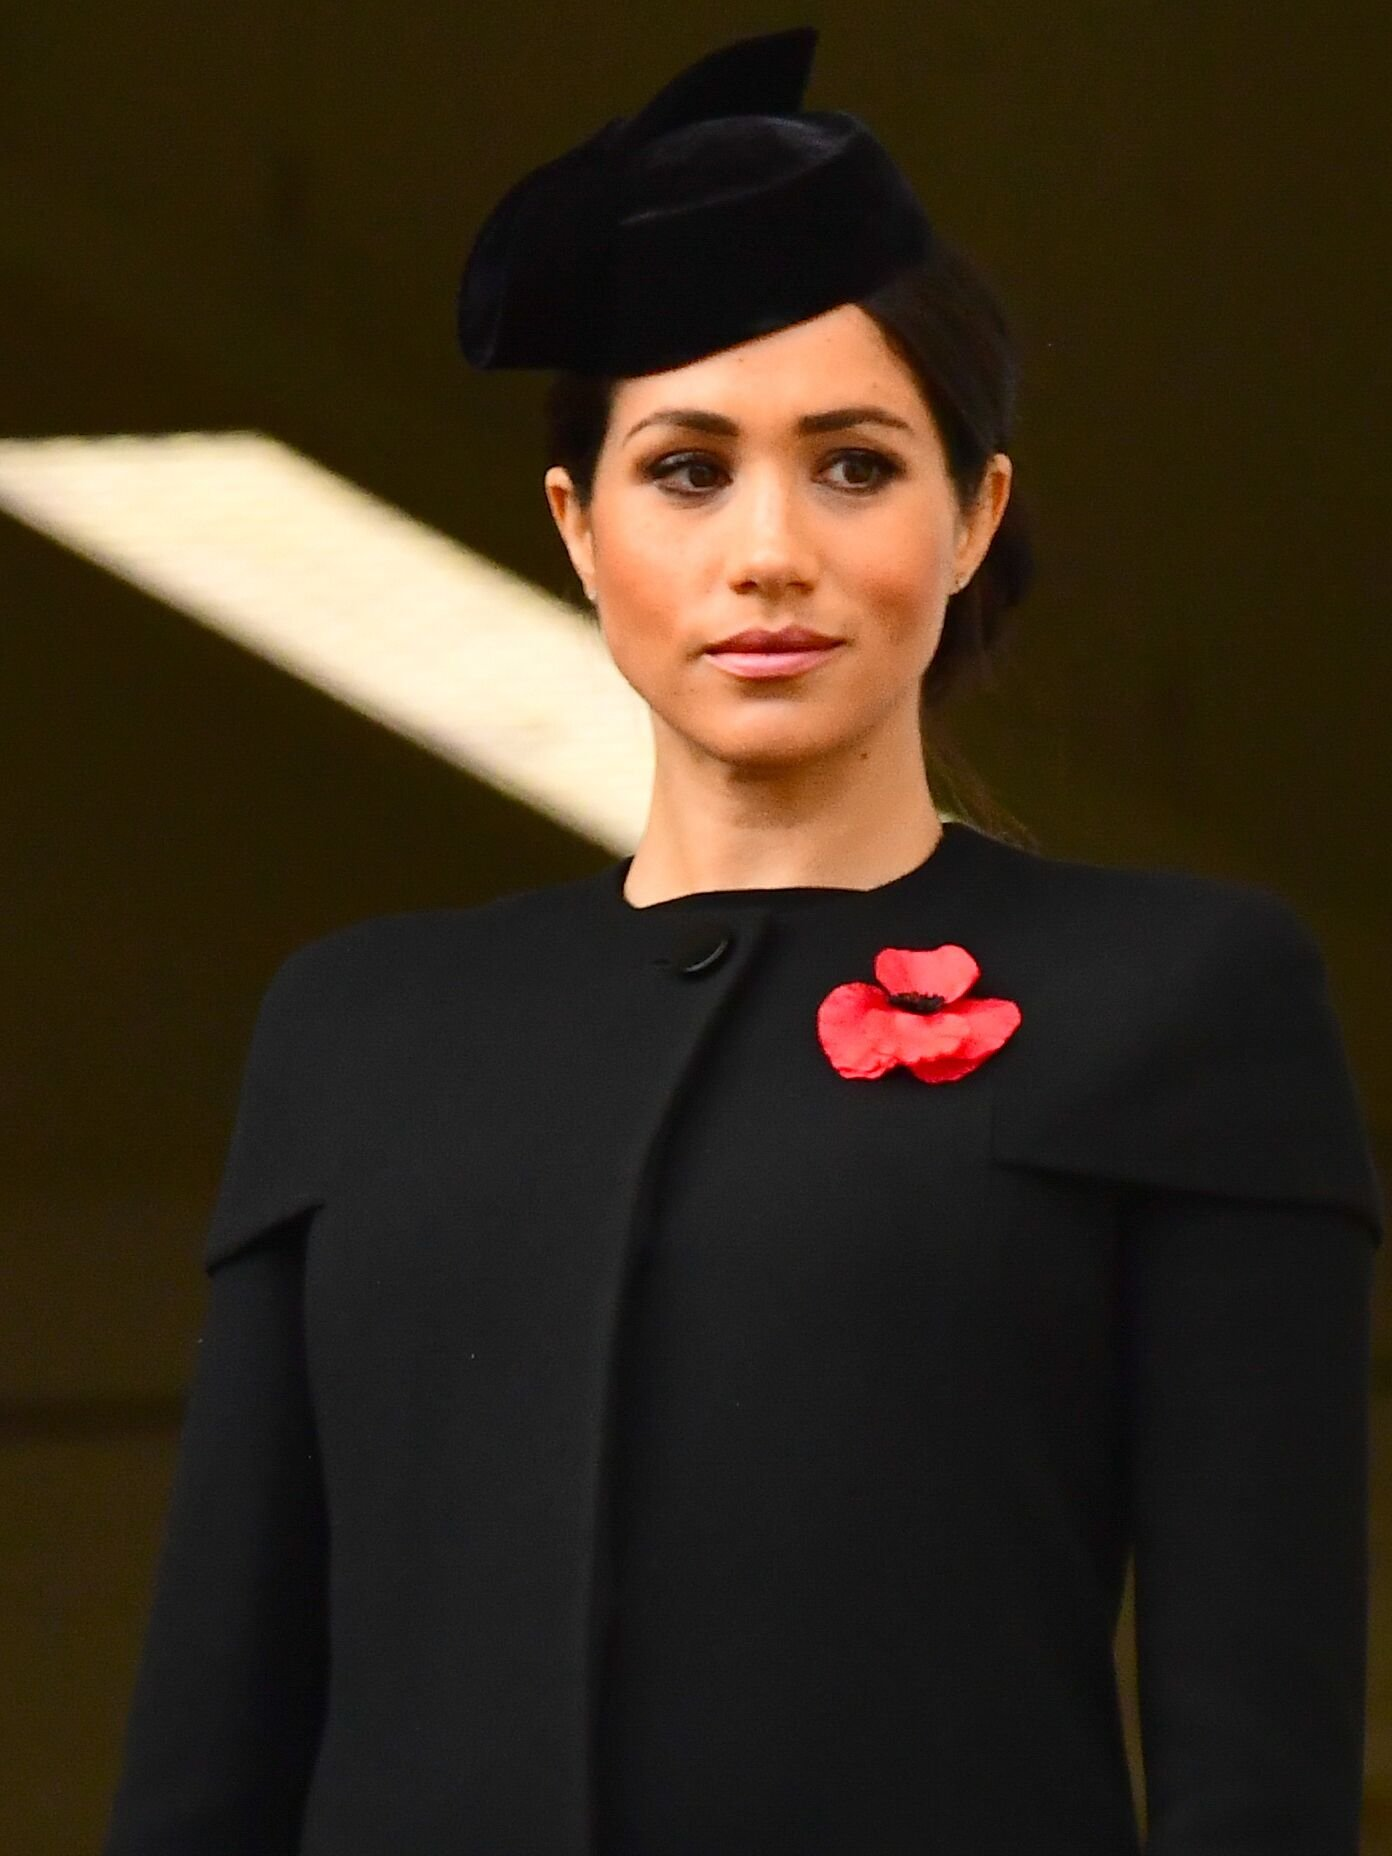 Meghan Markle attends the annual Remembrance Sunday memorial. | Source: Getty Images